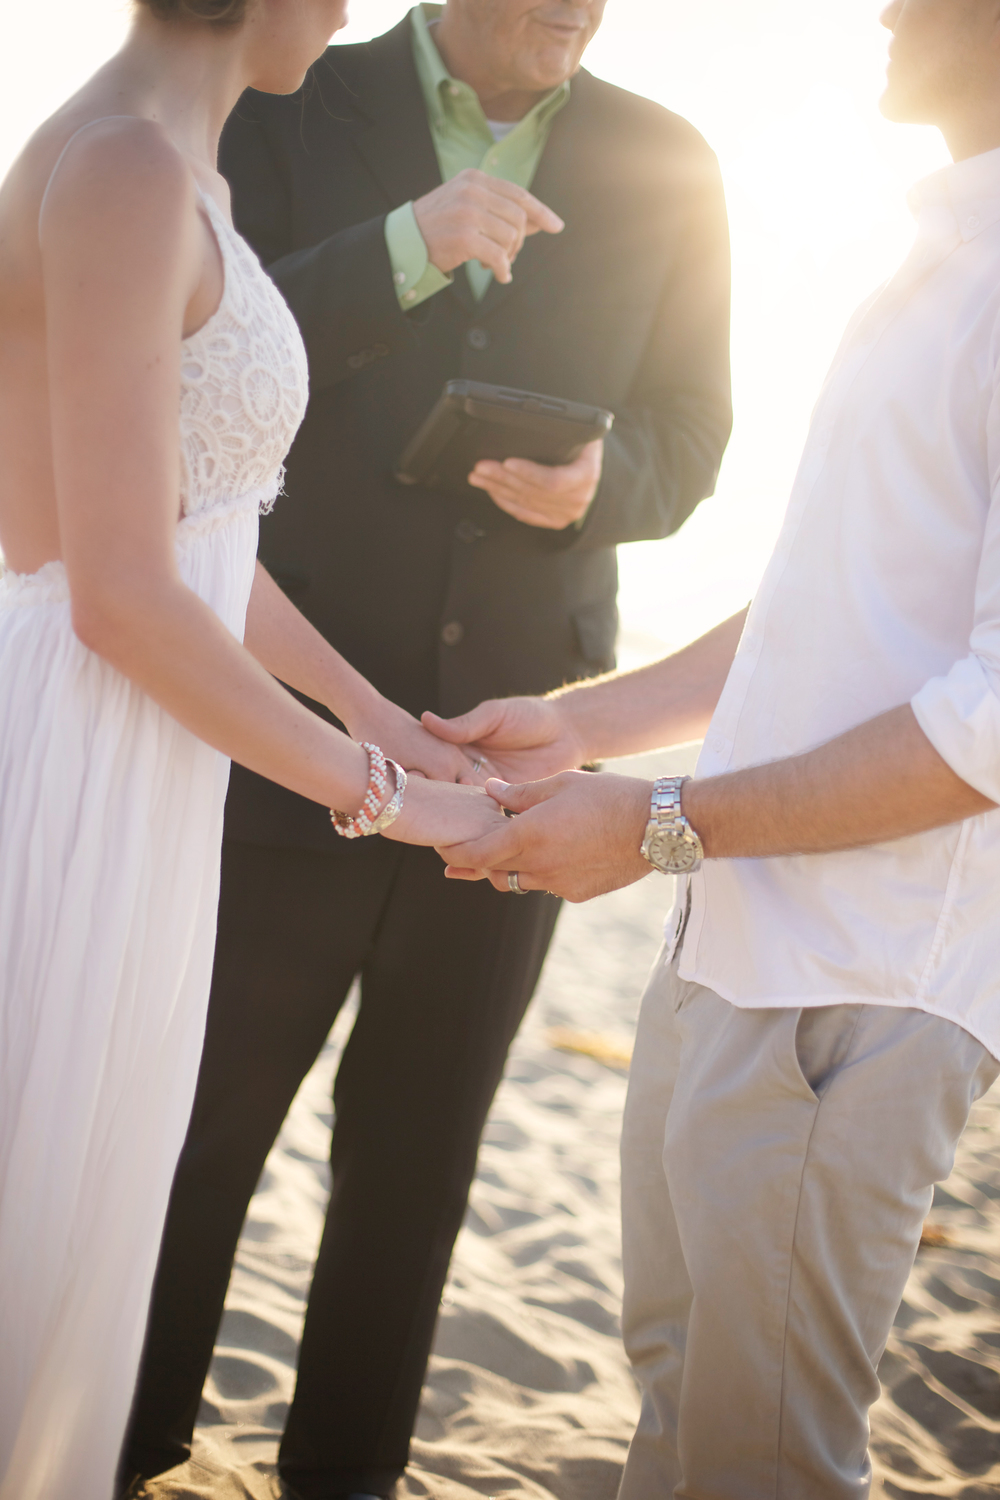 What to Look For When Choosing Your Wedding Officiant